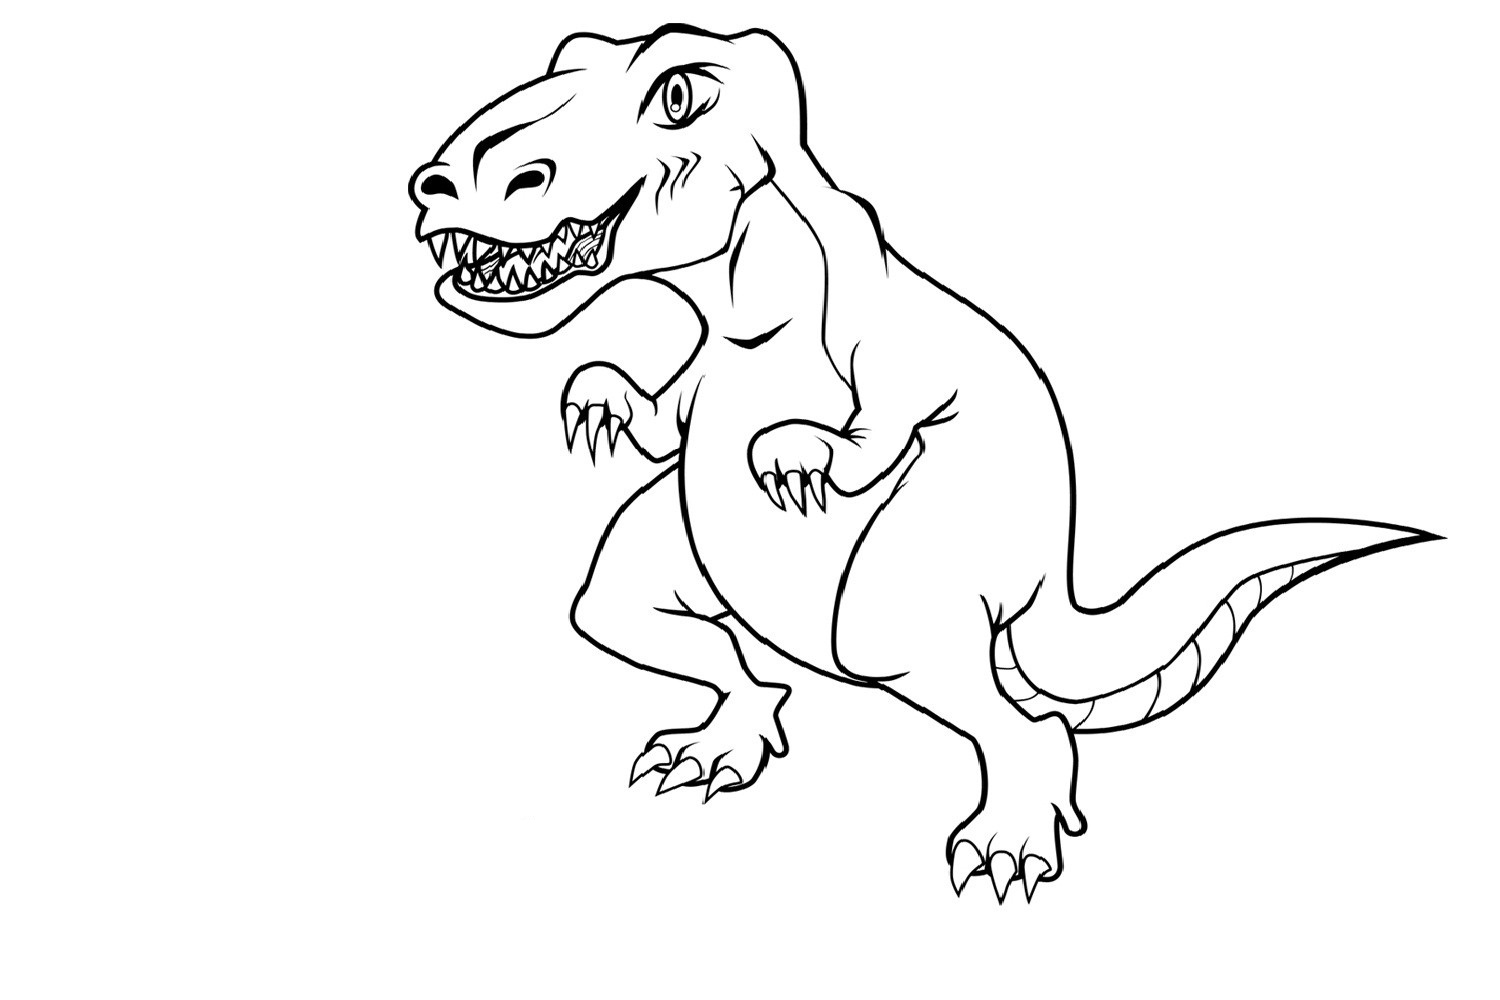 free printable dinosaur coloring pages dinosaur coloring pages free printable pictures coloring printable dinosaur pages free coloring